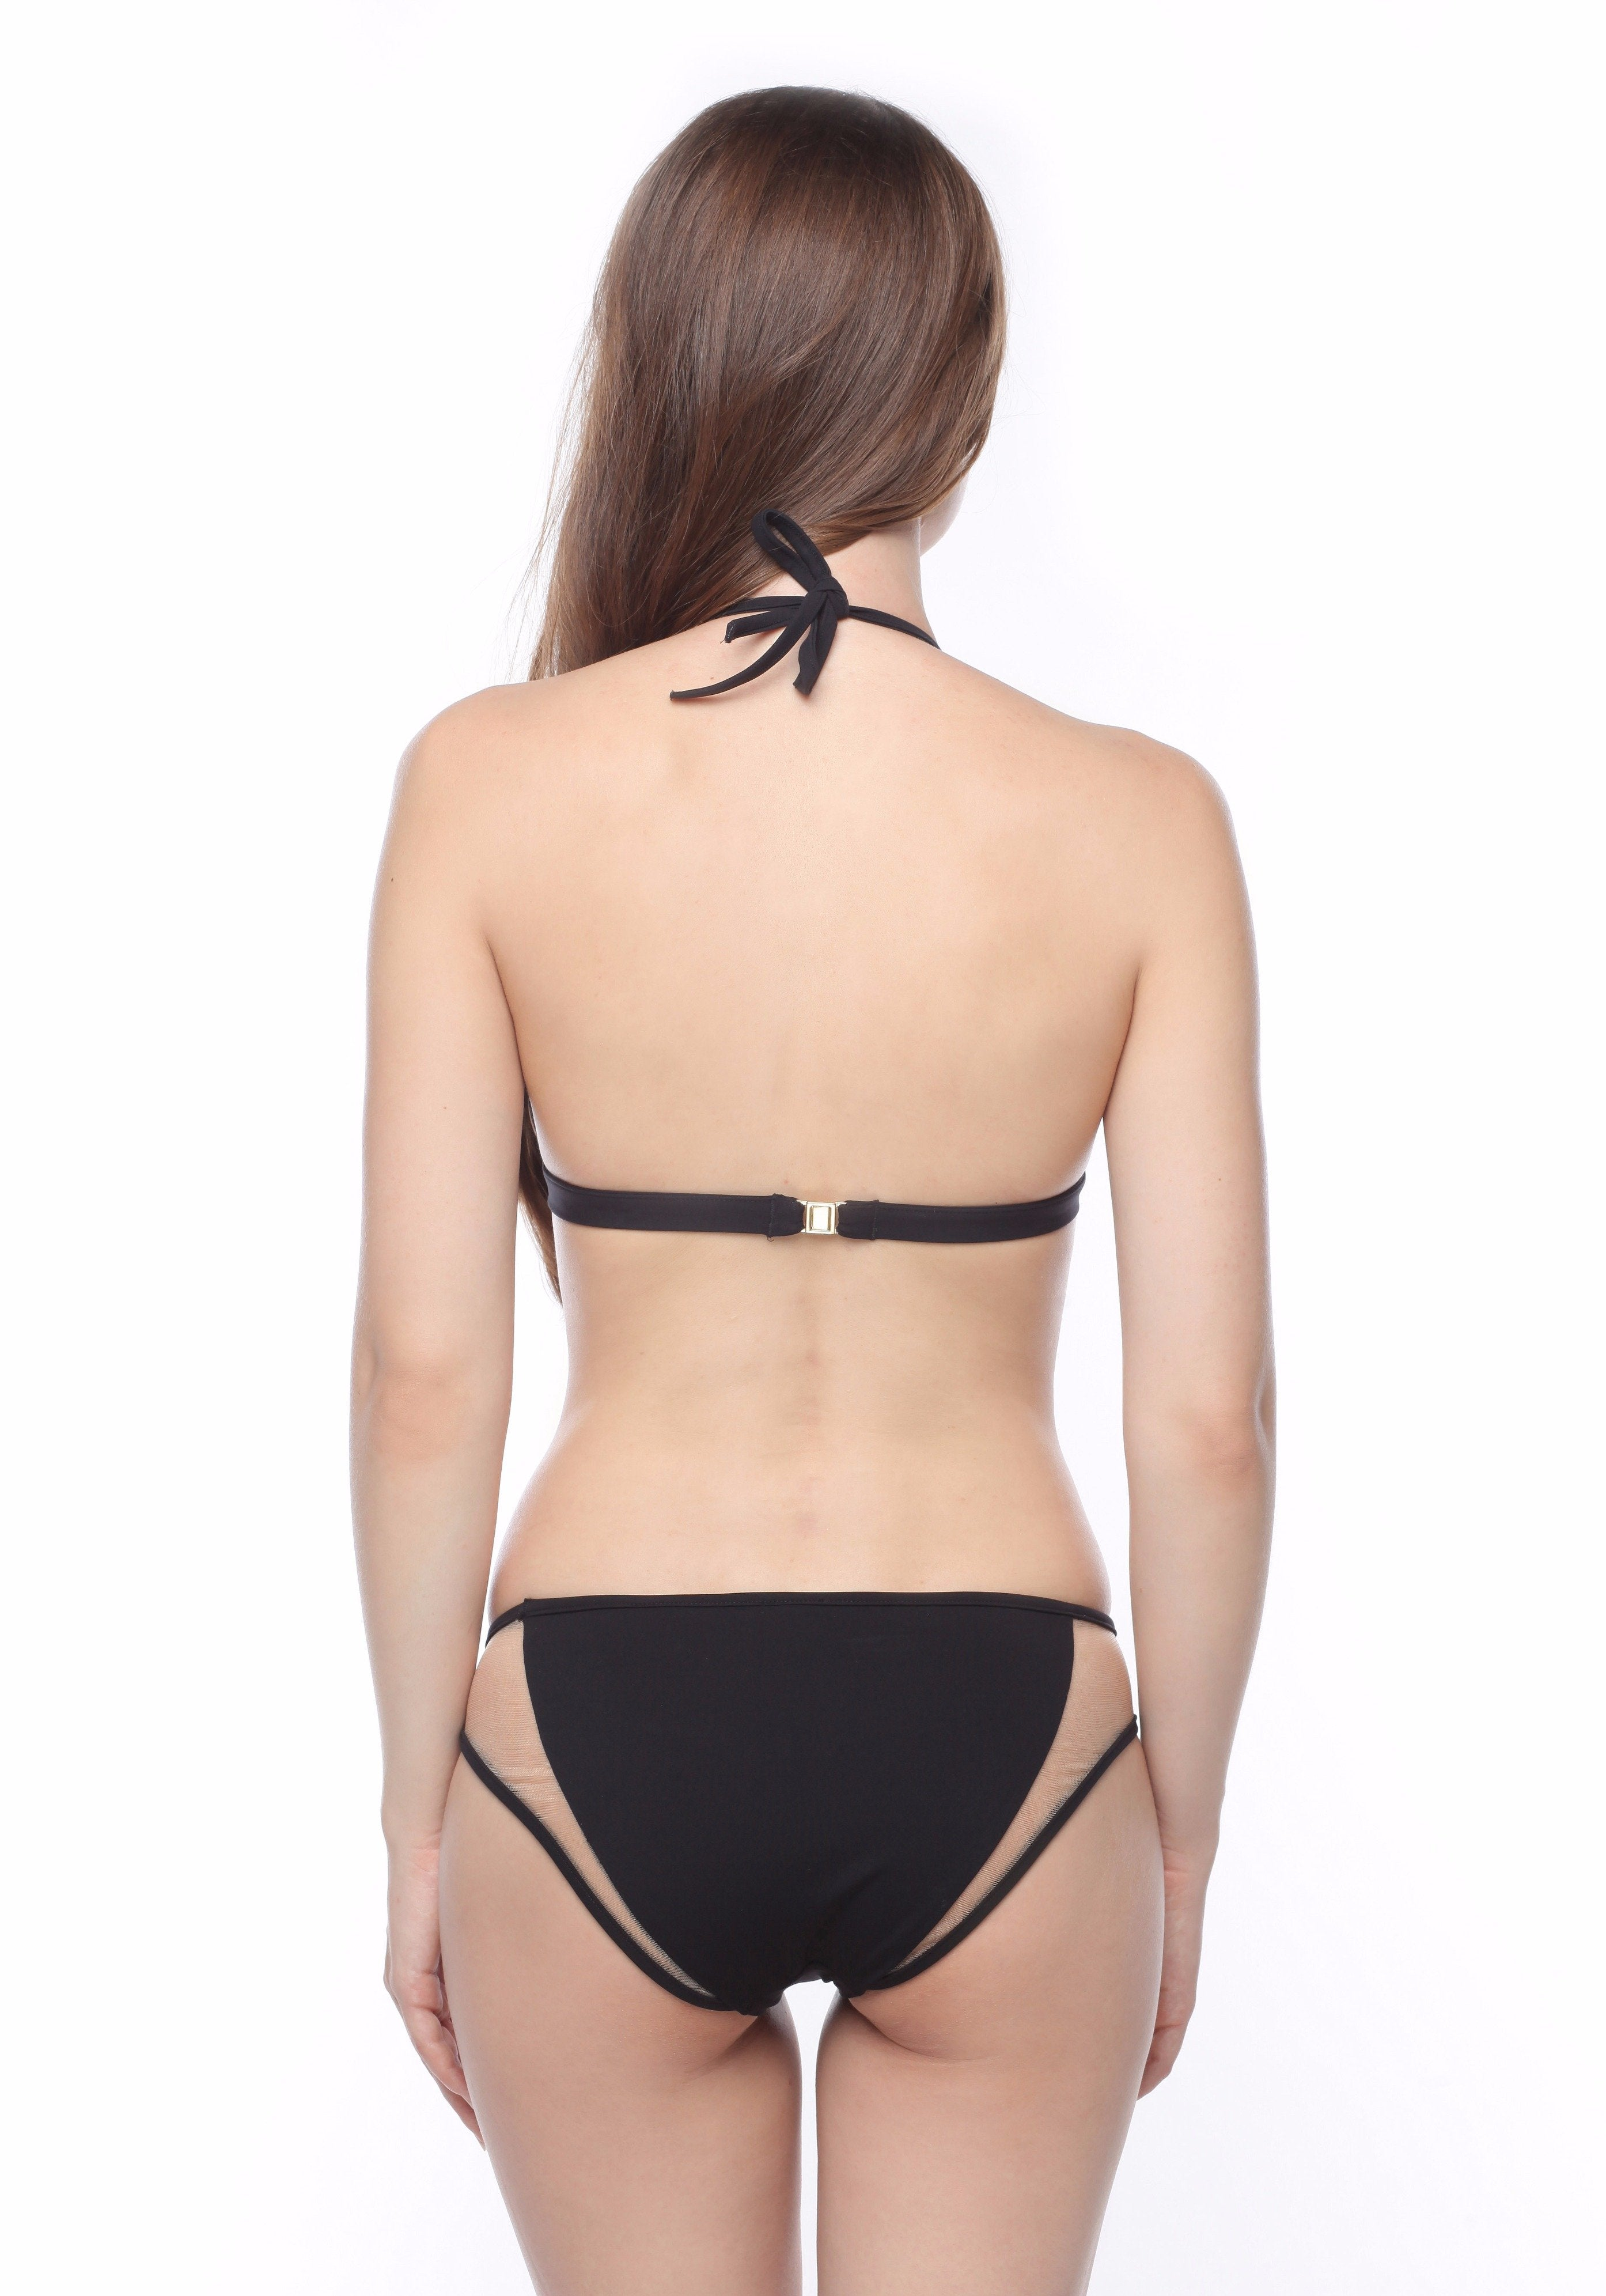 Sunrise in Seychelles Bikini Bottom in Black